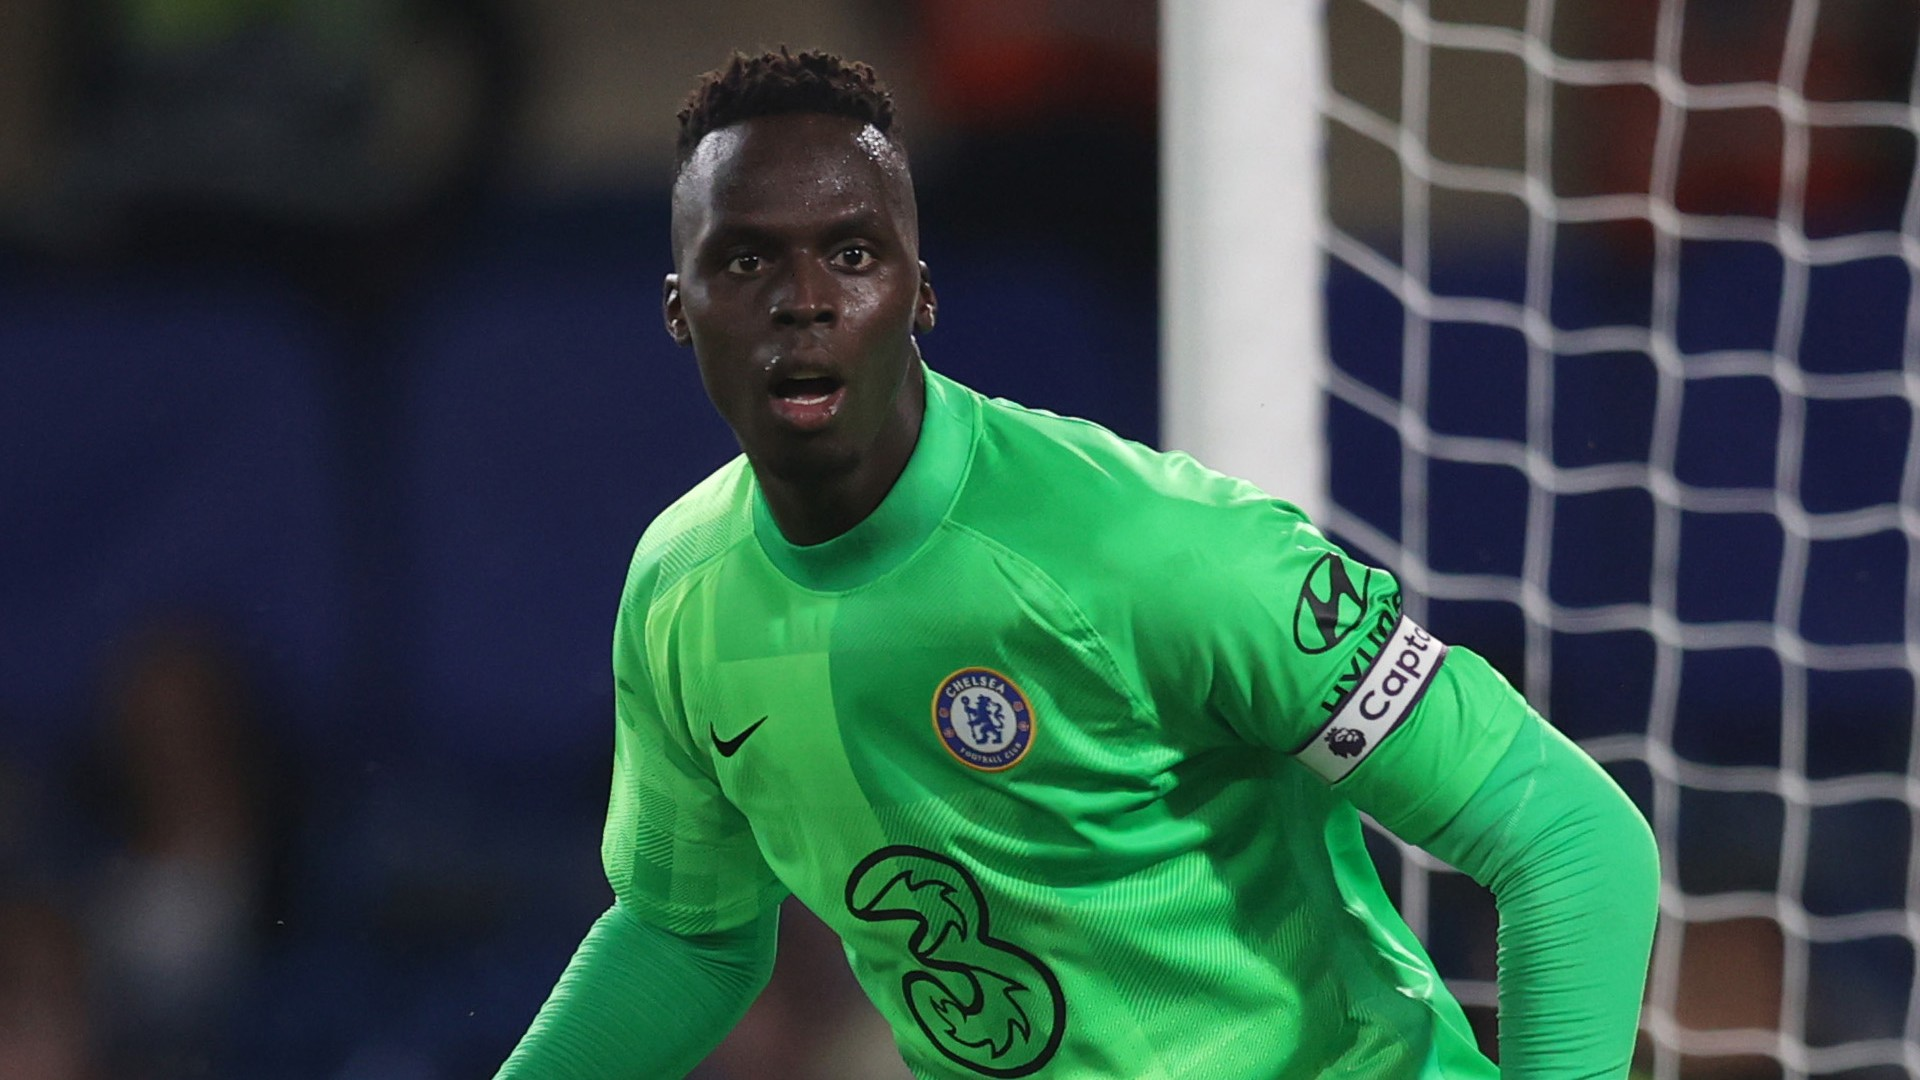 Tuchel offers update on 'very painful' Mendy knock that forced Chelsea into Kepa change